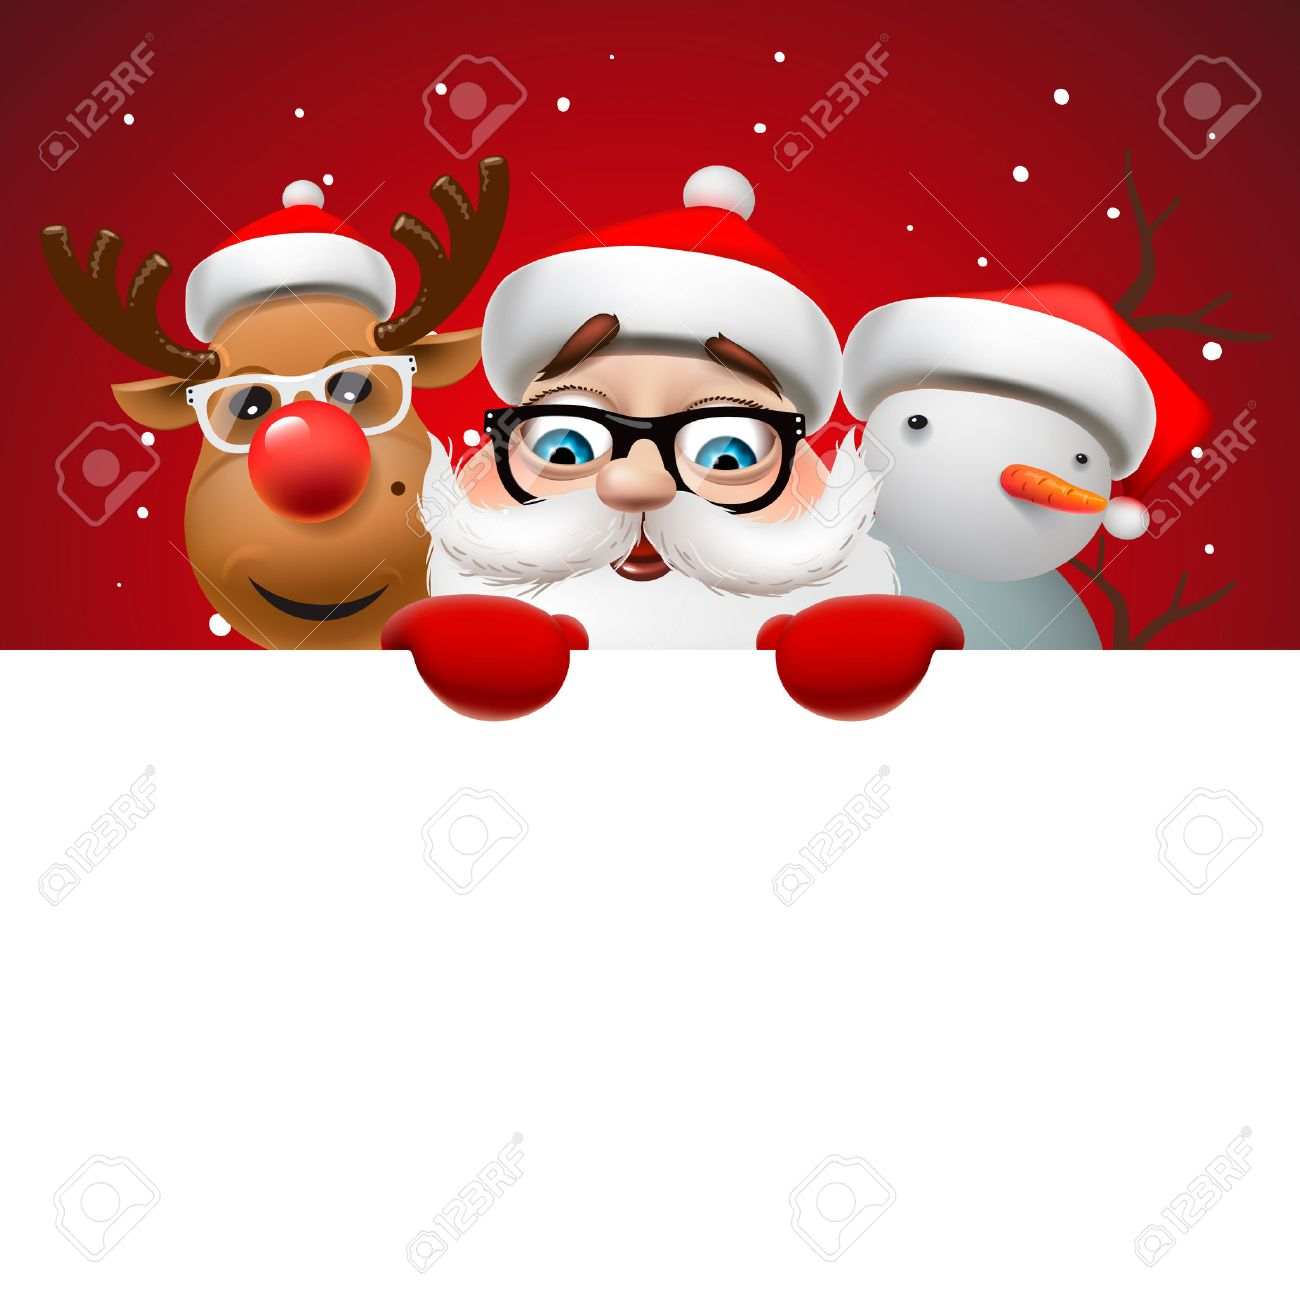 Greeting card, Christmas card with Santa Claus ,deer and snowman, vector illustration. Standard-Bild - 47864138